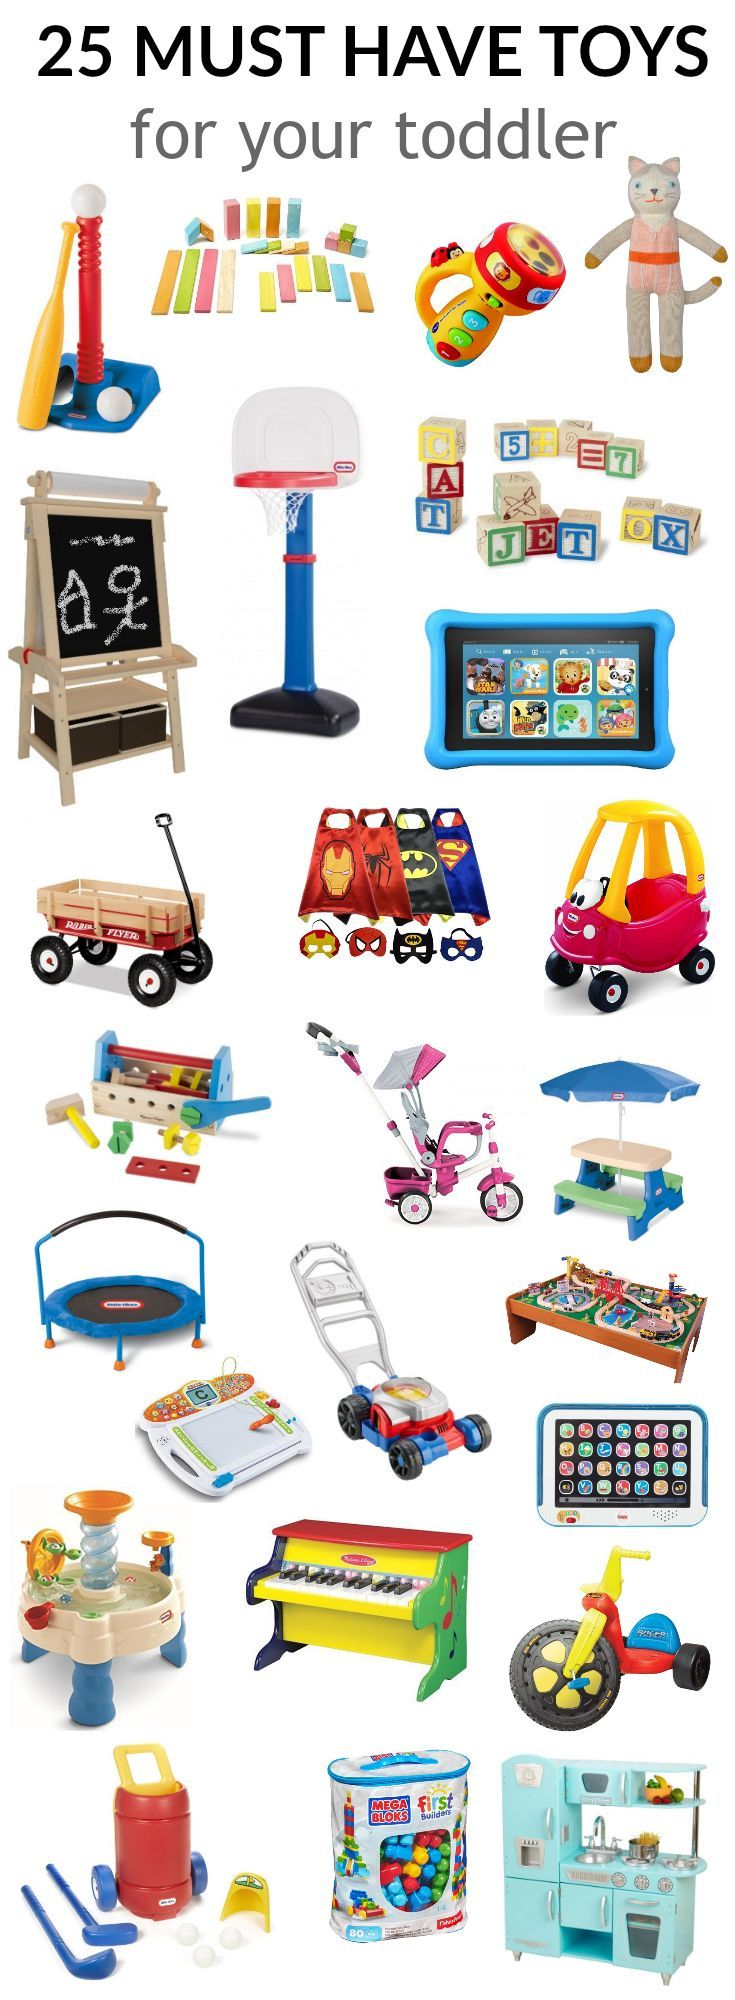 25 must have toddler toys | kids | toddler toys, toddler gifts, best